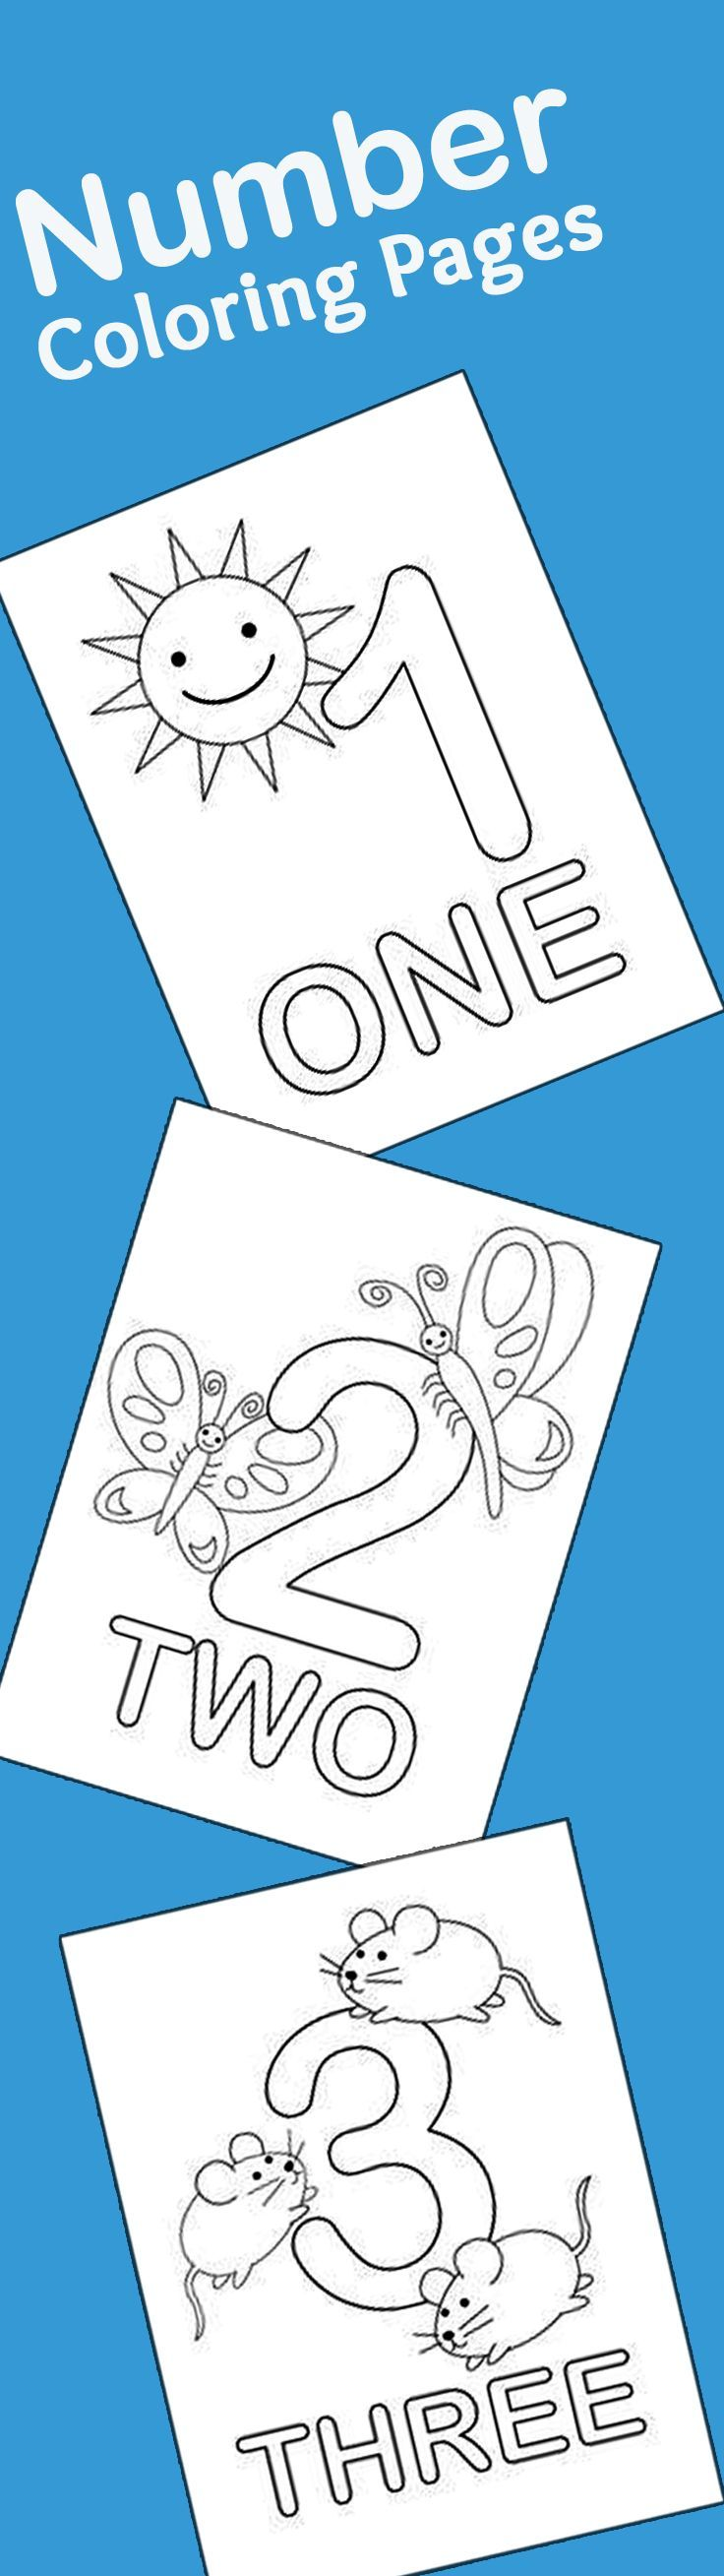 Numbers 1 for stylish free printable color by numbers coloring pages - Top 21 Free Printable Number Coloring Pages Online